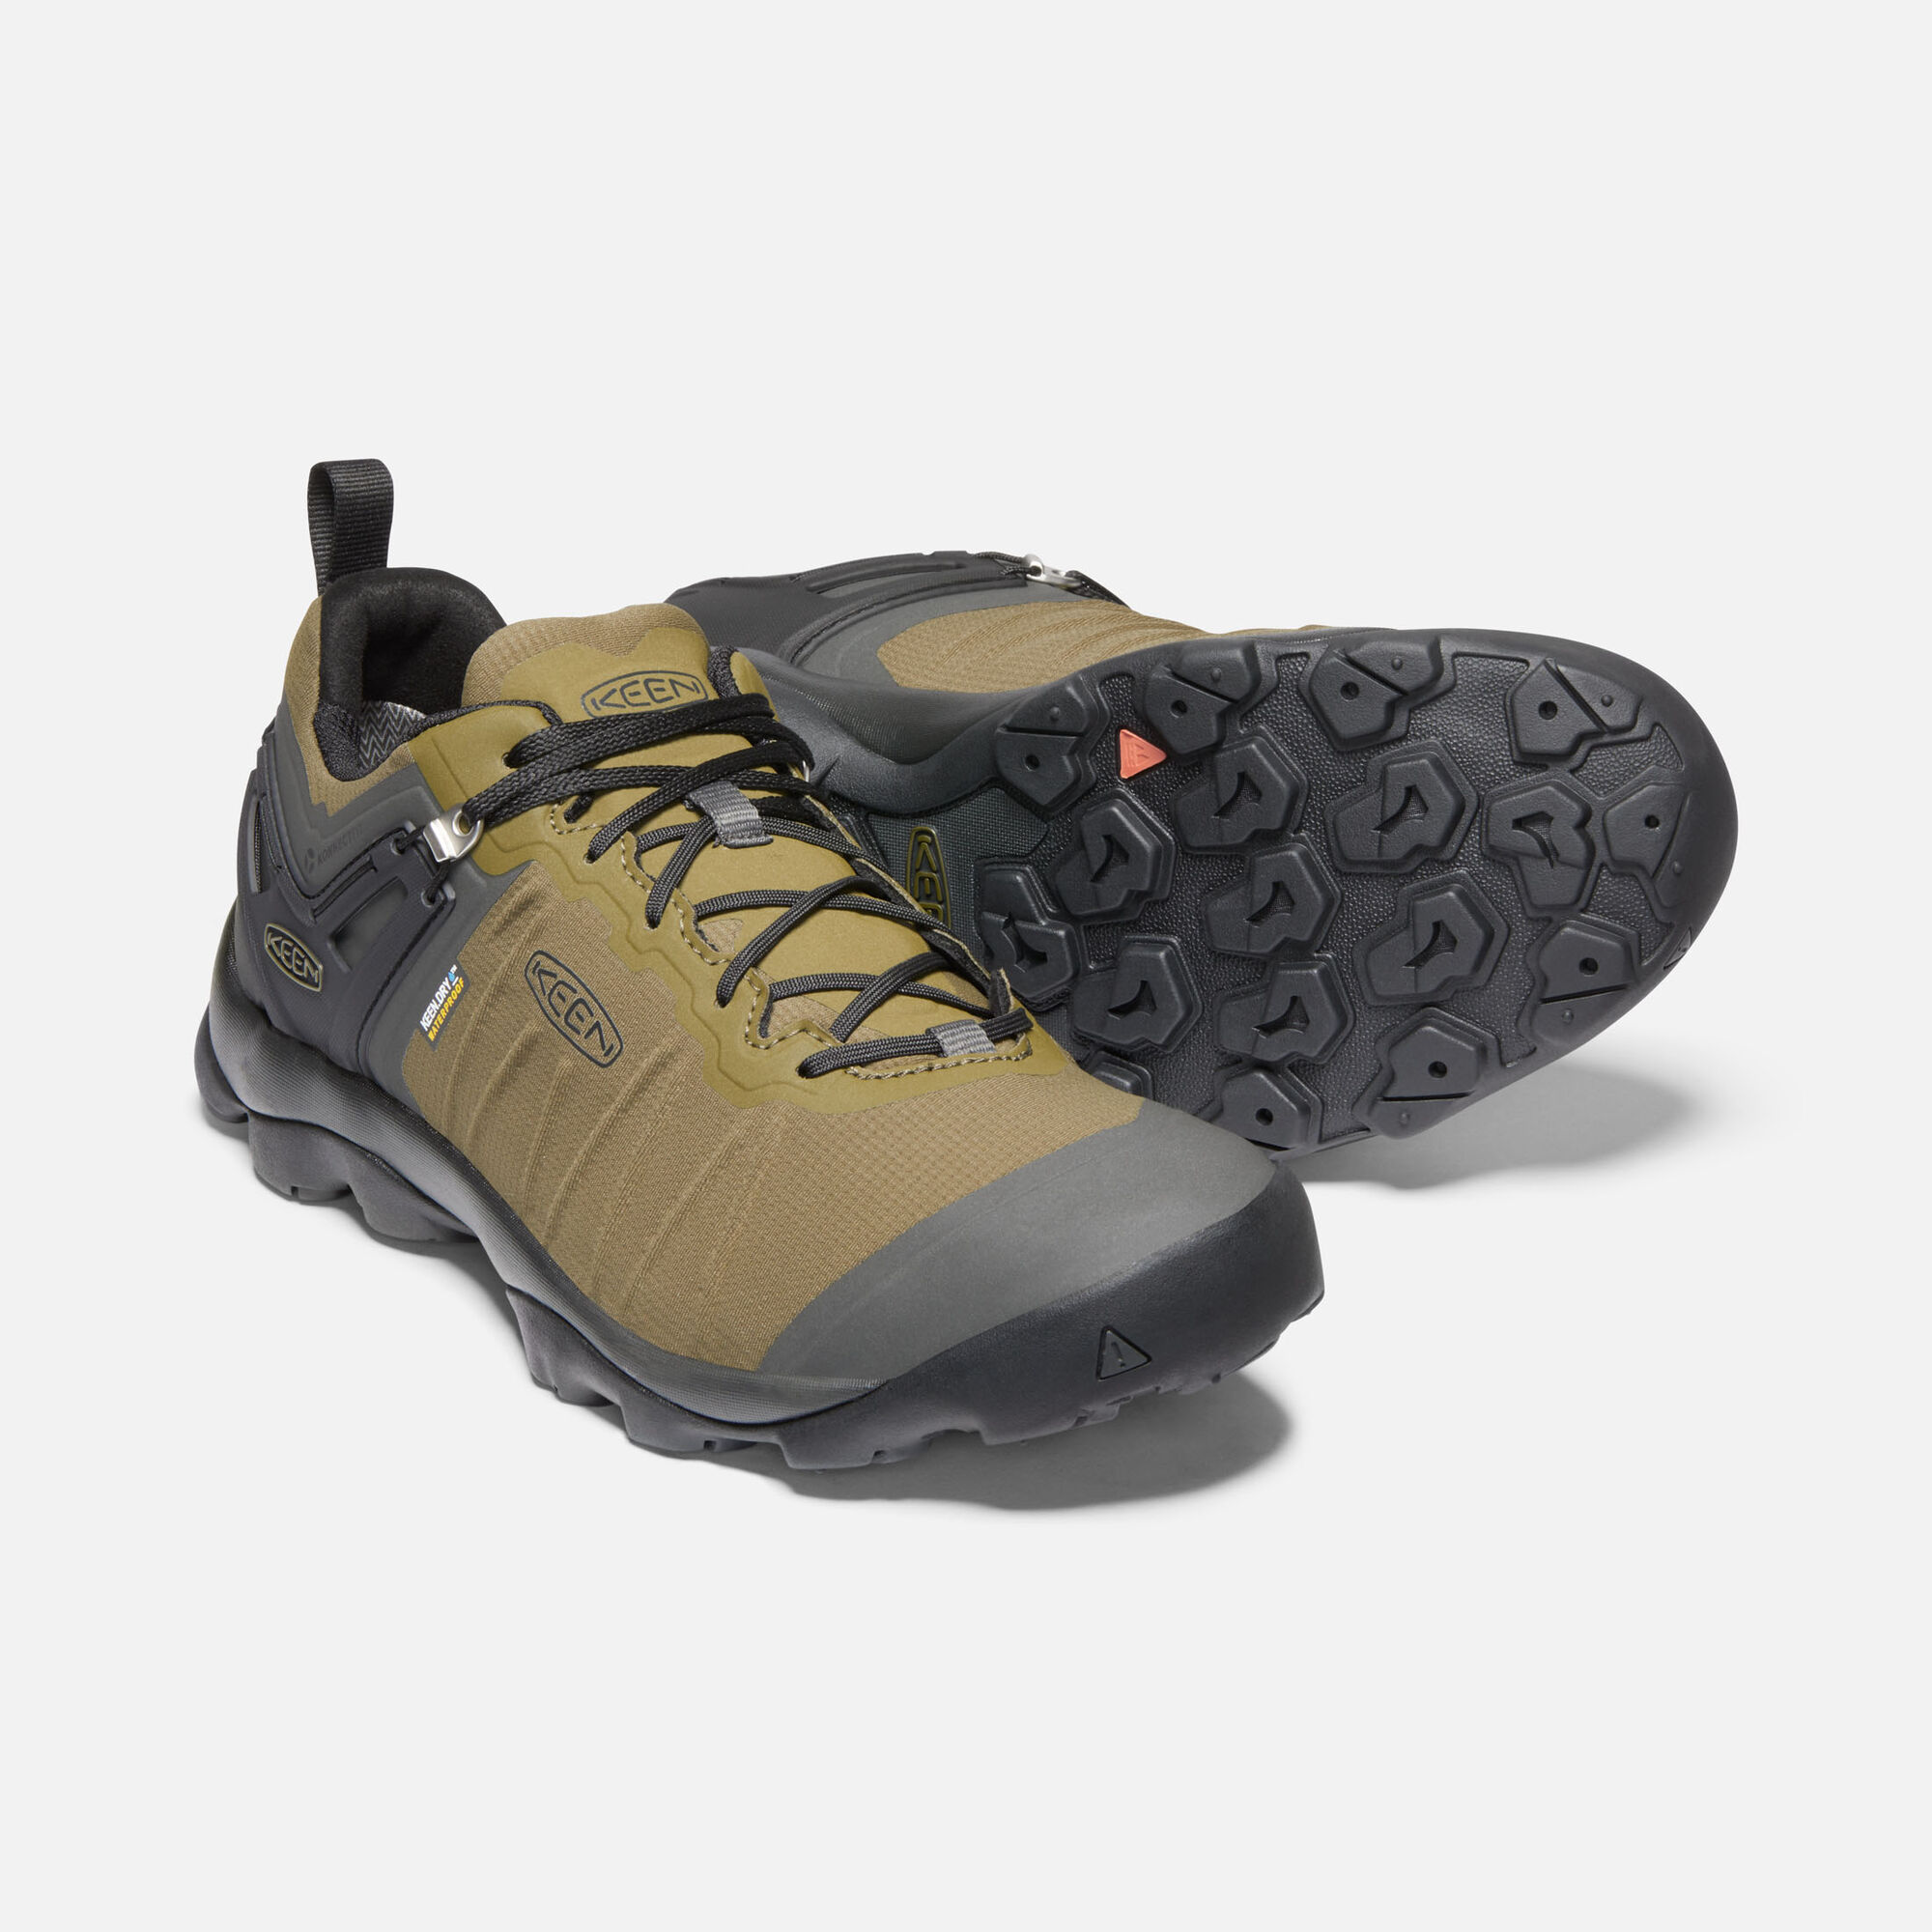 212c601c012 Men s VENTURE WP in DARK OLIVE RAVEN - small view.